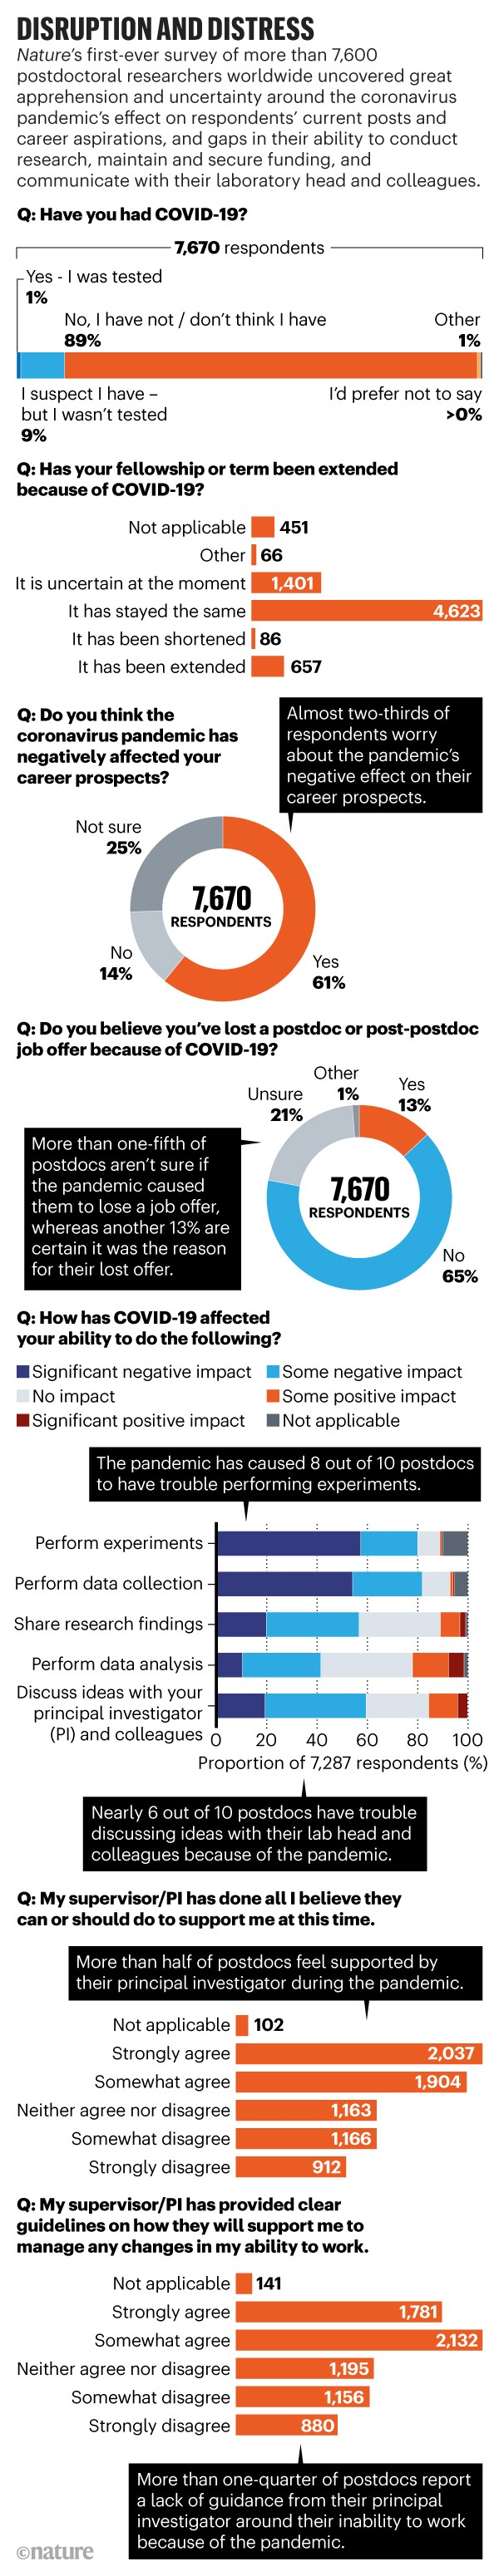 Infographic: Disruption and distress. The results of Nature's first-ever survey of more than 7,600 postdoc researchers.